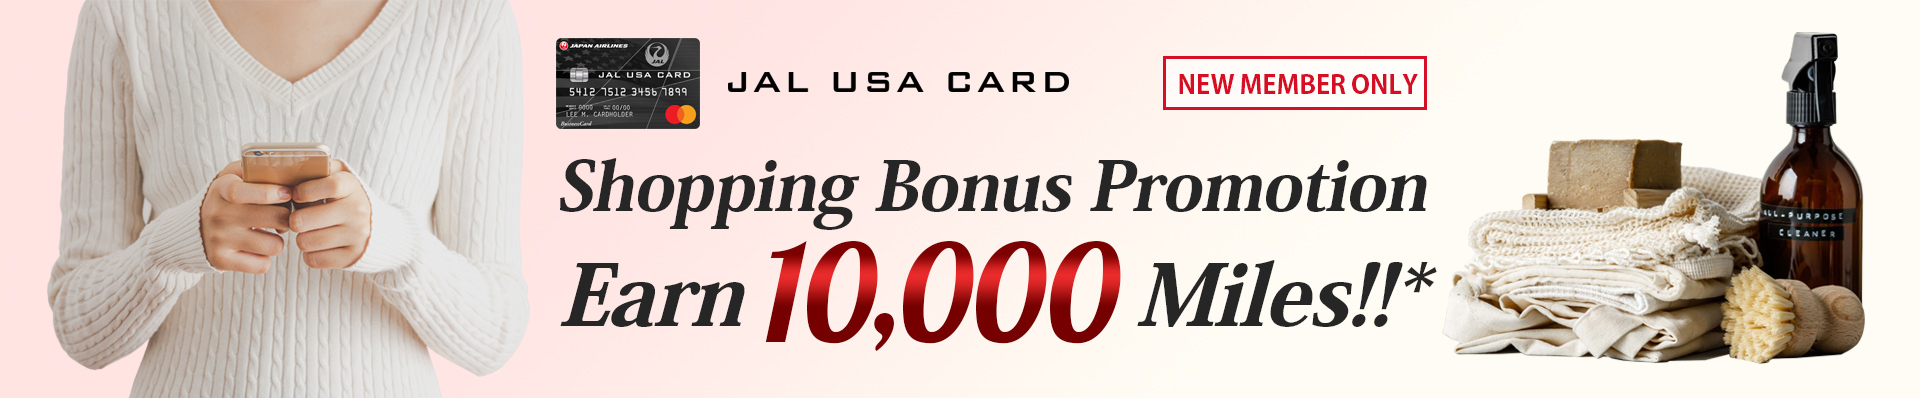 Shopping Bonus Promotion